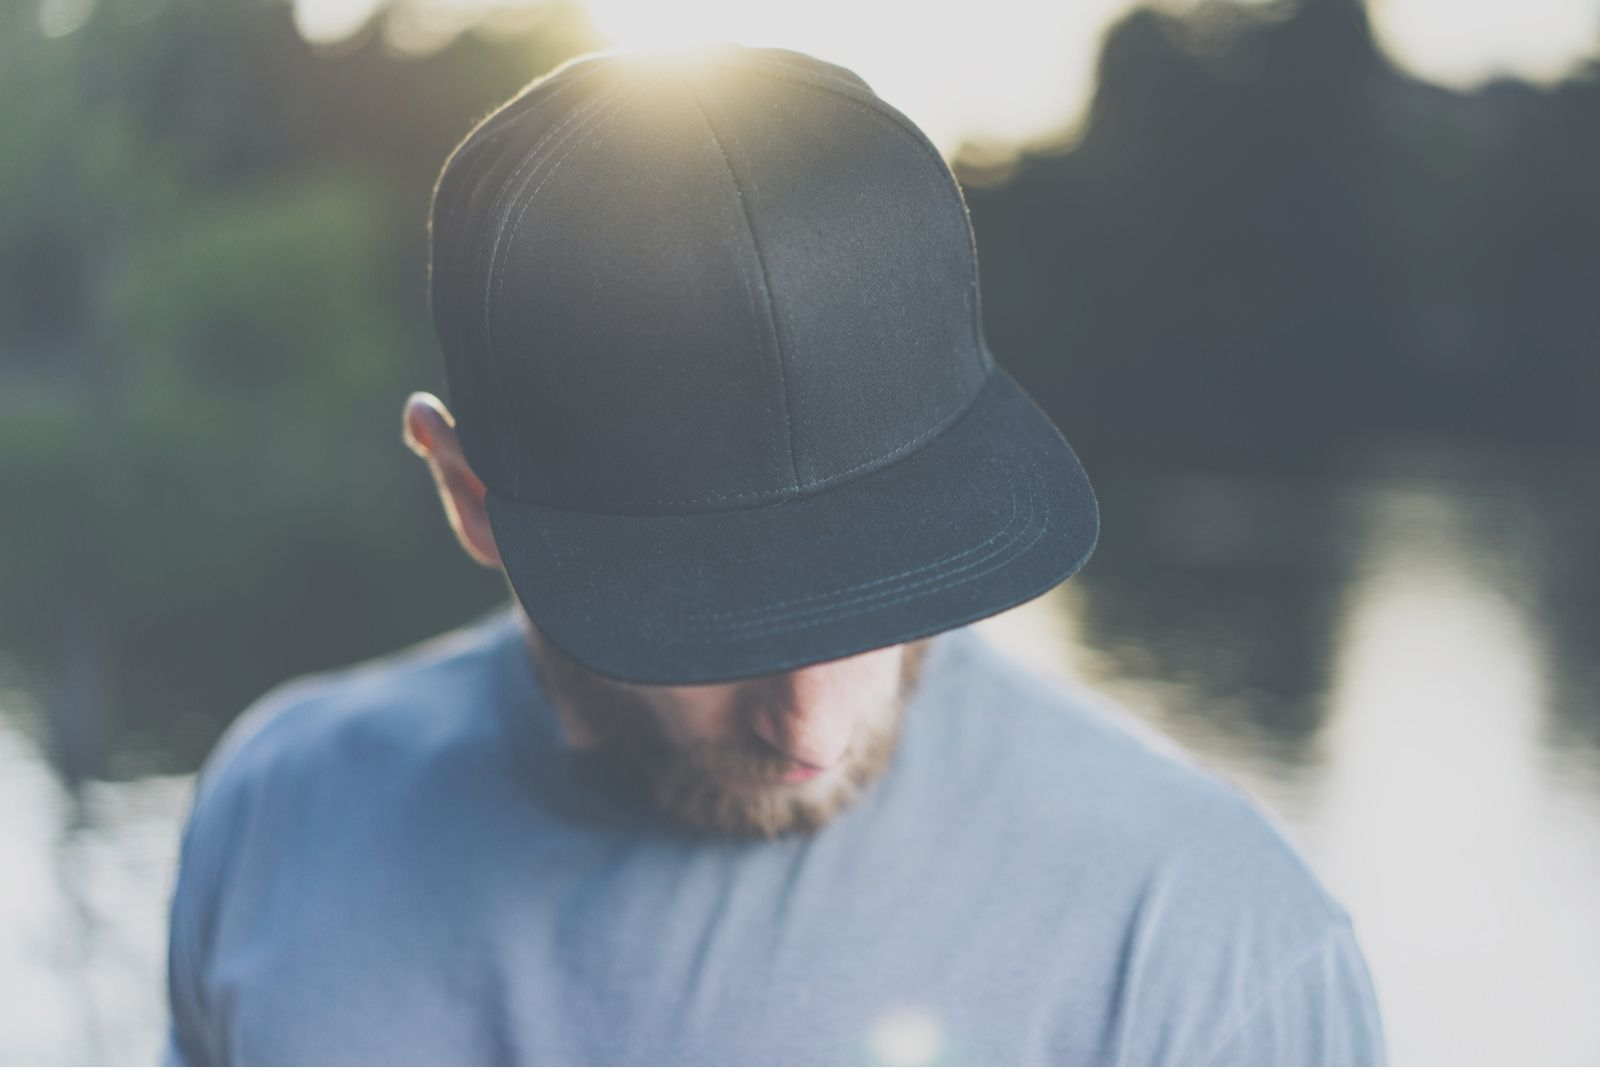 man with a cap bowing down sad standing outdoors